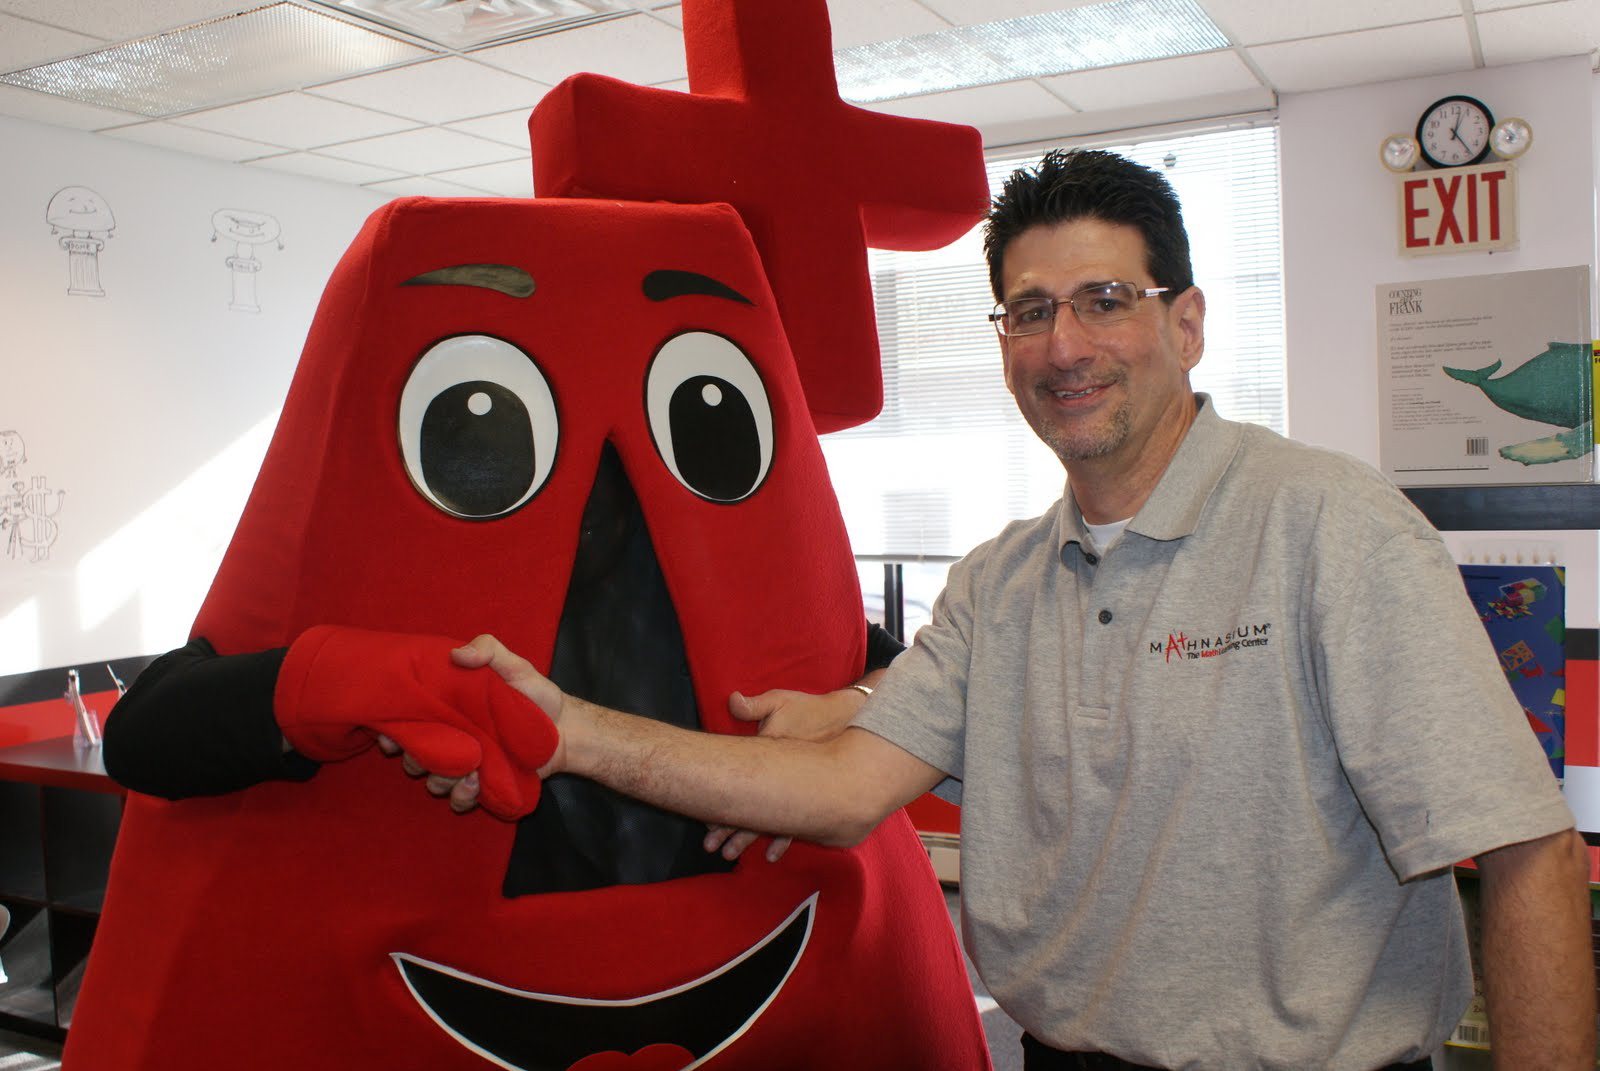 Mathnasium of New Hyde Park center director Peter Abrams greets mascot A+ at  the grand opening on January 16.